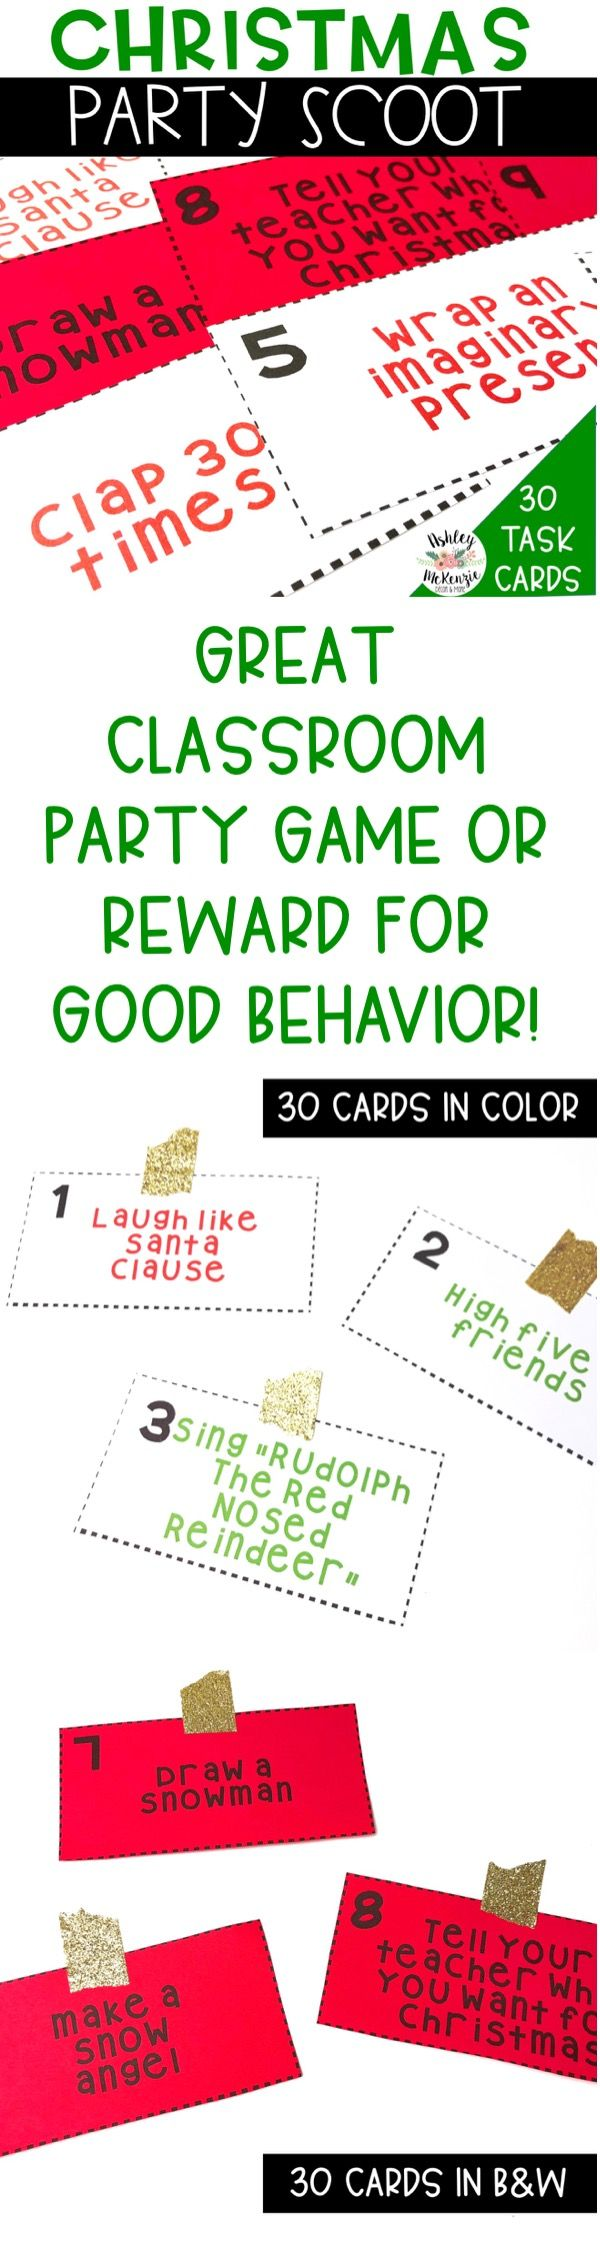 Classroom Christmas Party Scoot Game! Great reward for good behavior or for your classroom Christmas party!